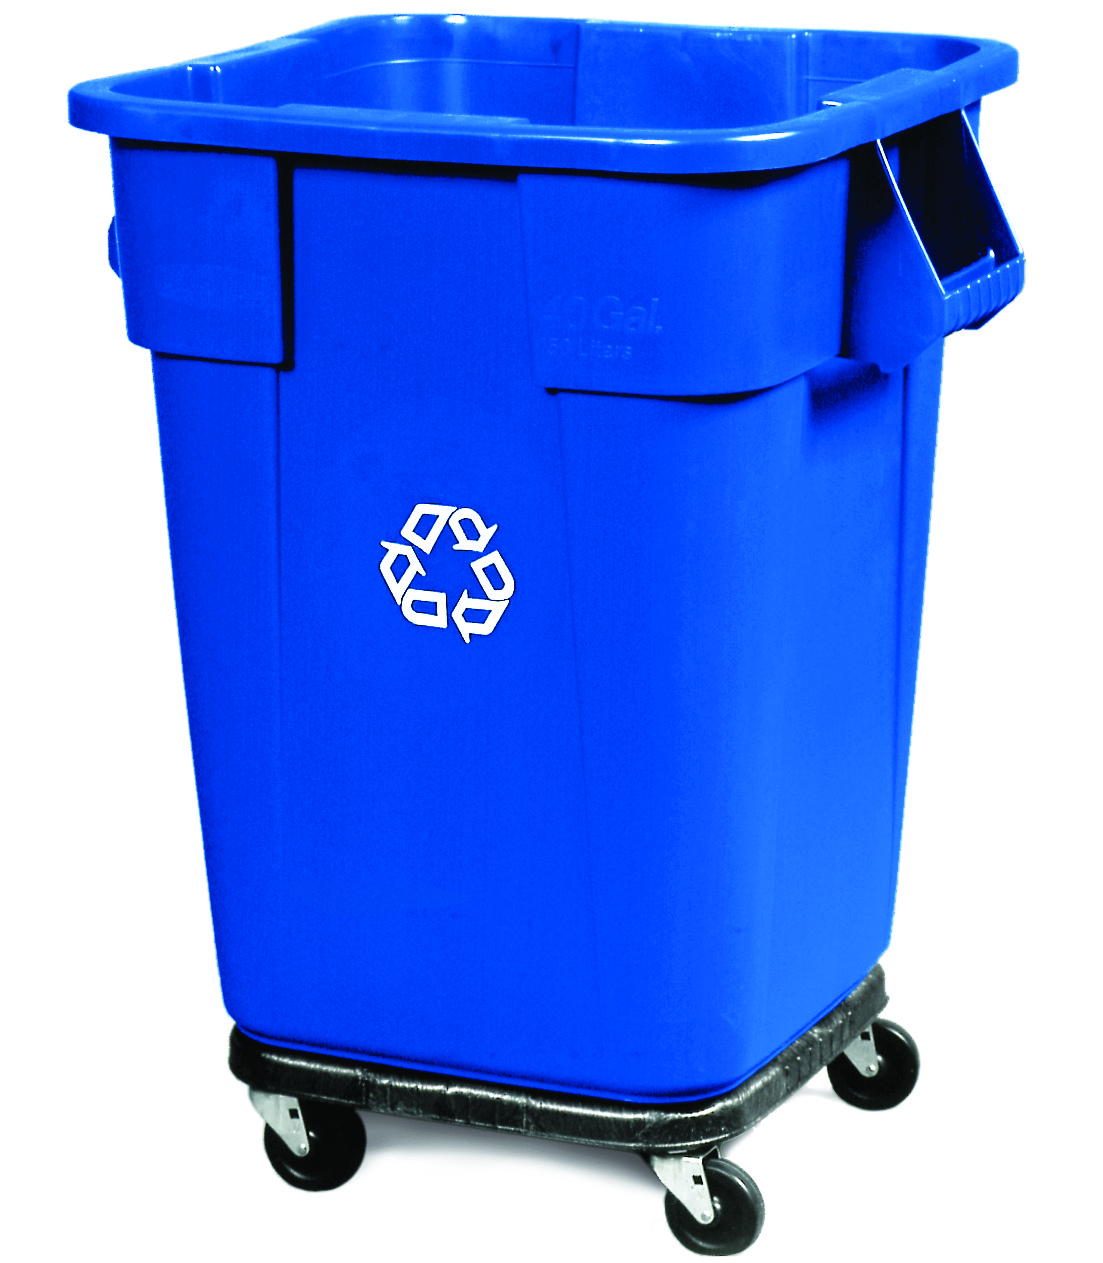 buy brute 40 gallon square recycling containers online 3536 73 recycle away. Black Bedroom Furniture Sets. Home Design Ideas